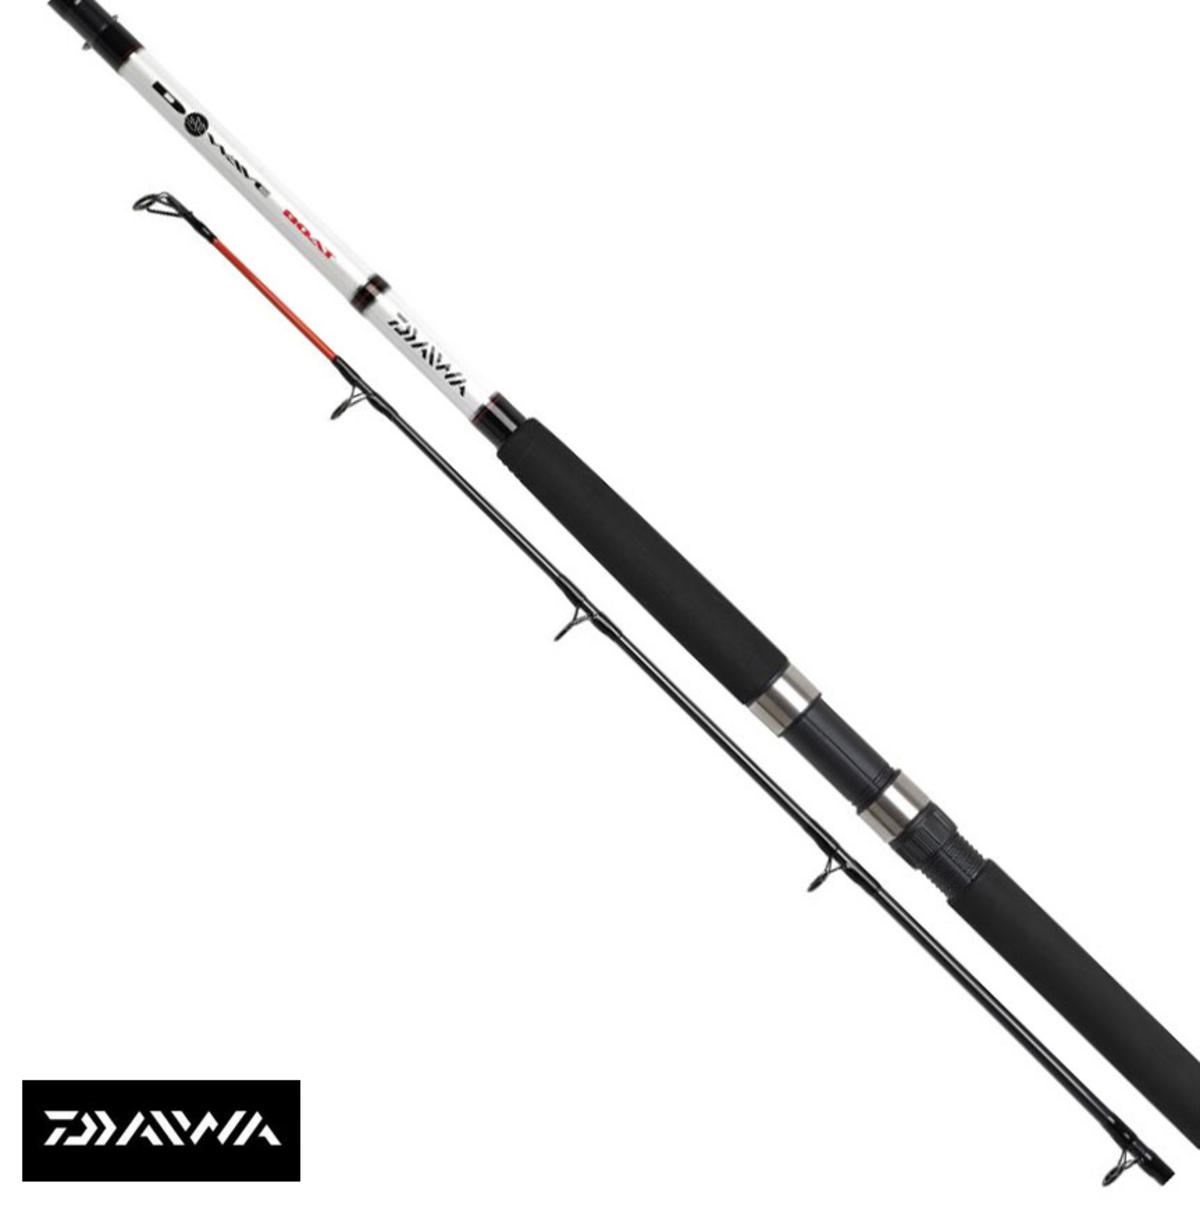 New Daiwa D Wave 7ft 2pc 20-30lb Class Boat Rod Model No. DWB2030-AU